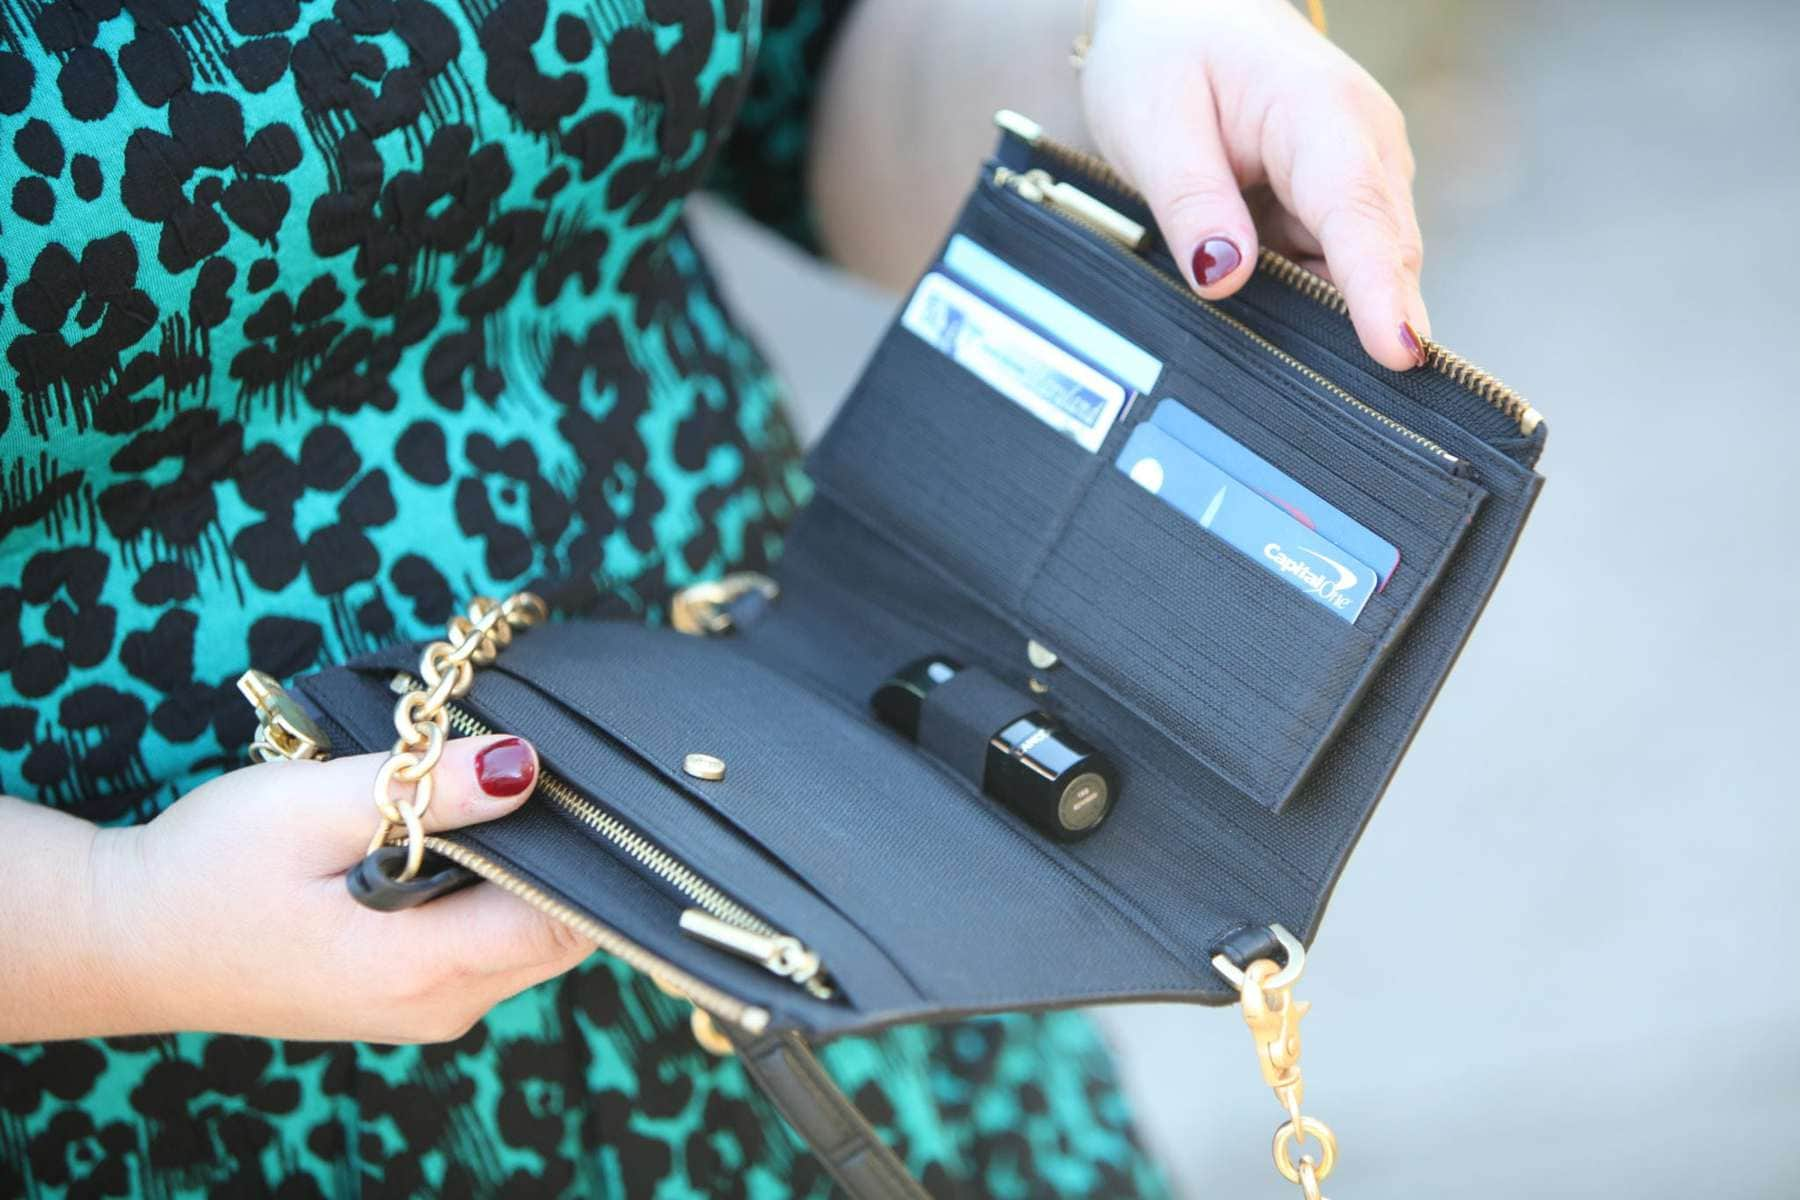 A review of the Dagne Dover Clutch-Wallet by Wardrobe Oxygen